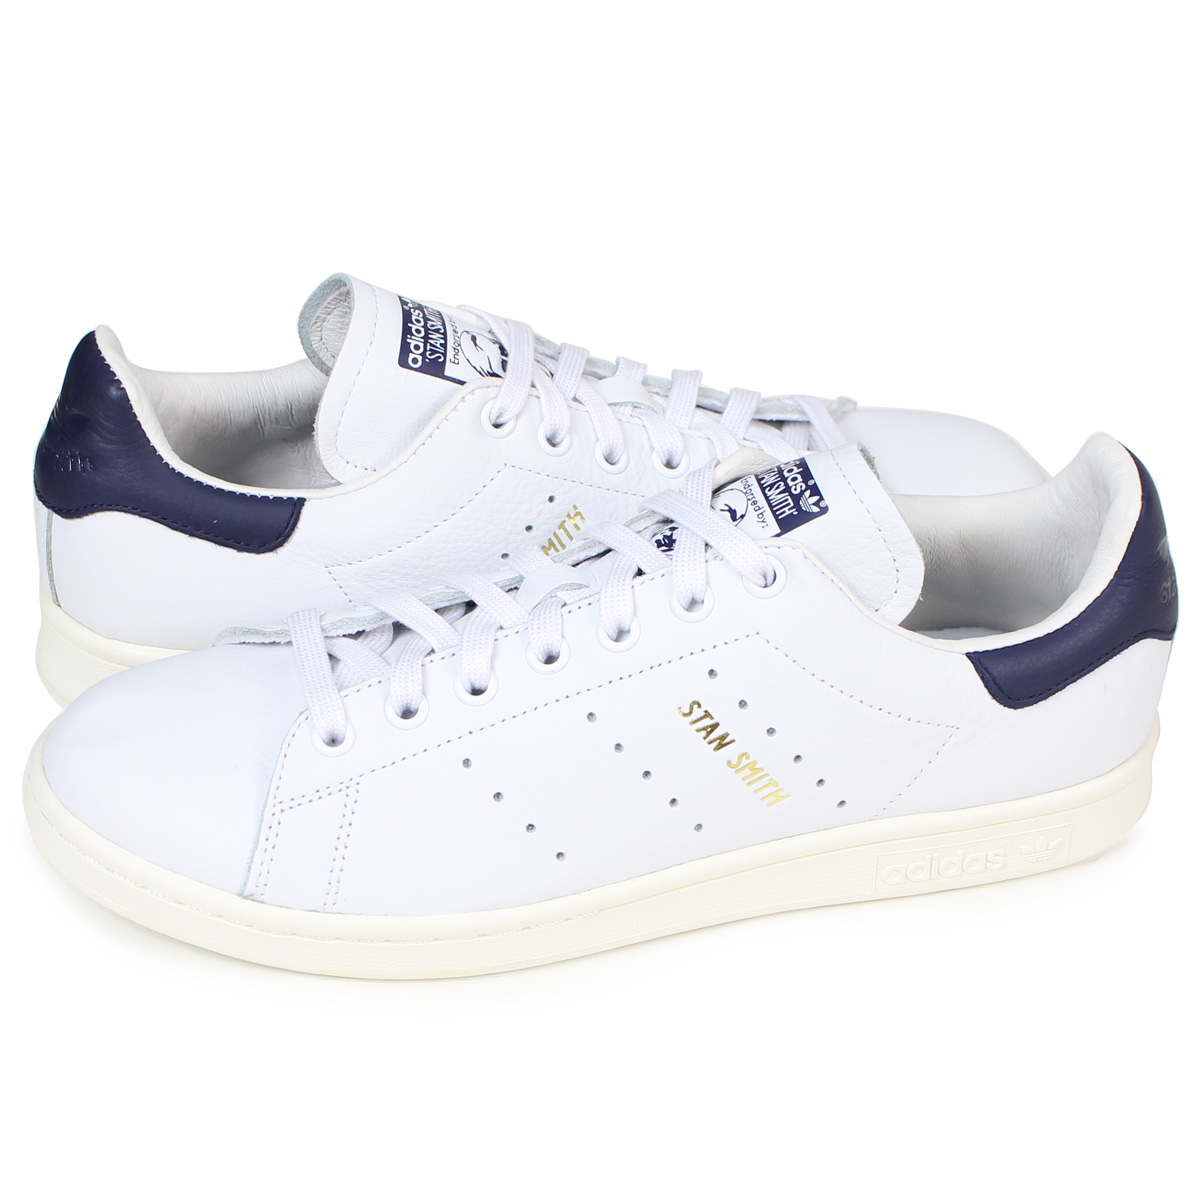 2228100ce815 adidas Originals STAN SMITH Adidas originals Stan Smith sneakers men gap  Dis white white CQ2870 [the 8/21 additional arrival]